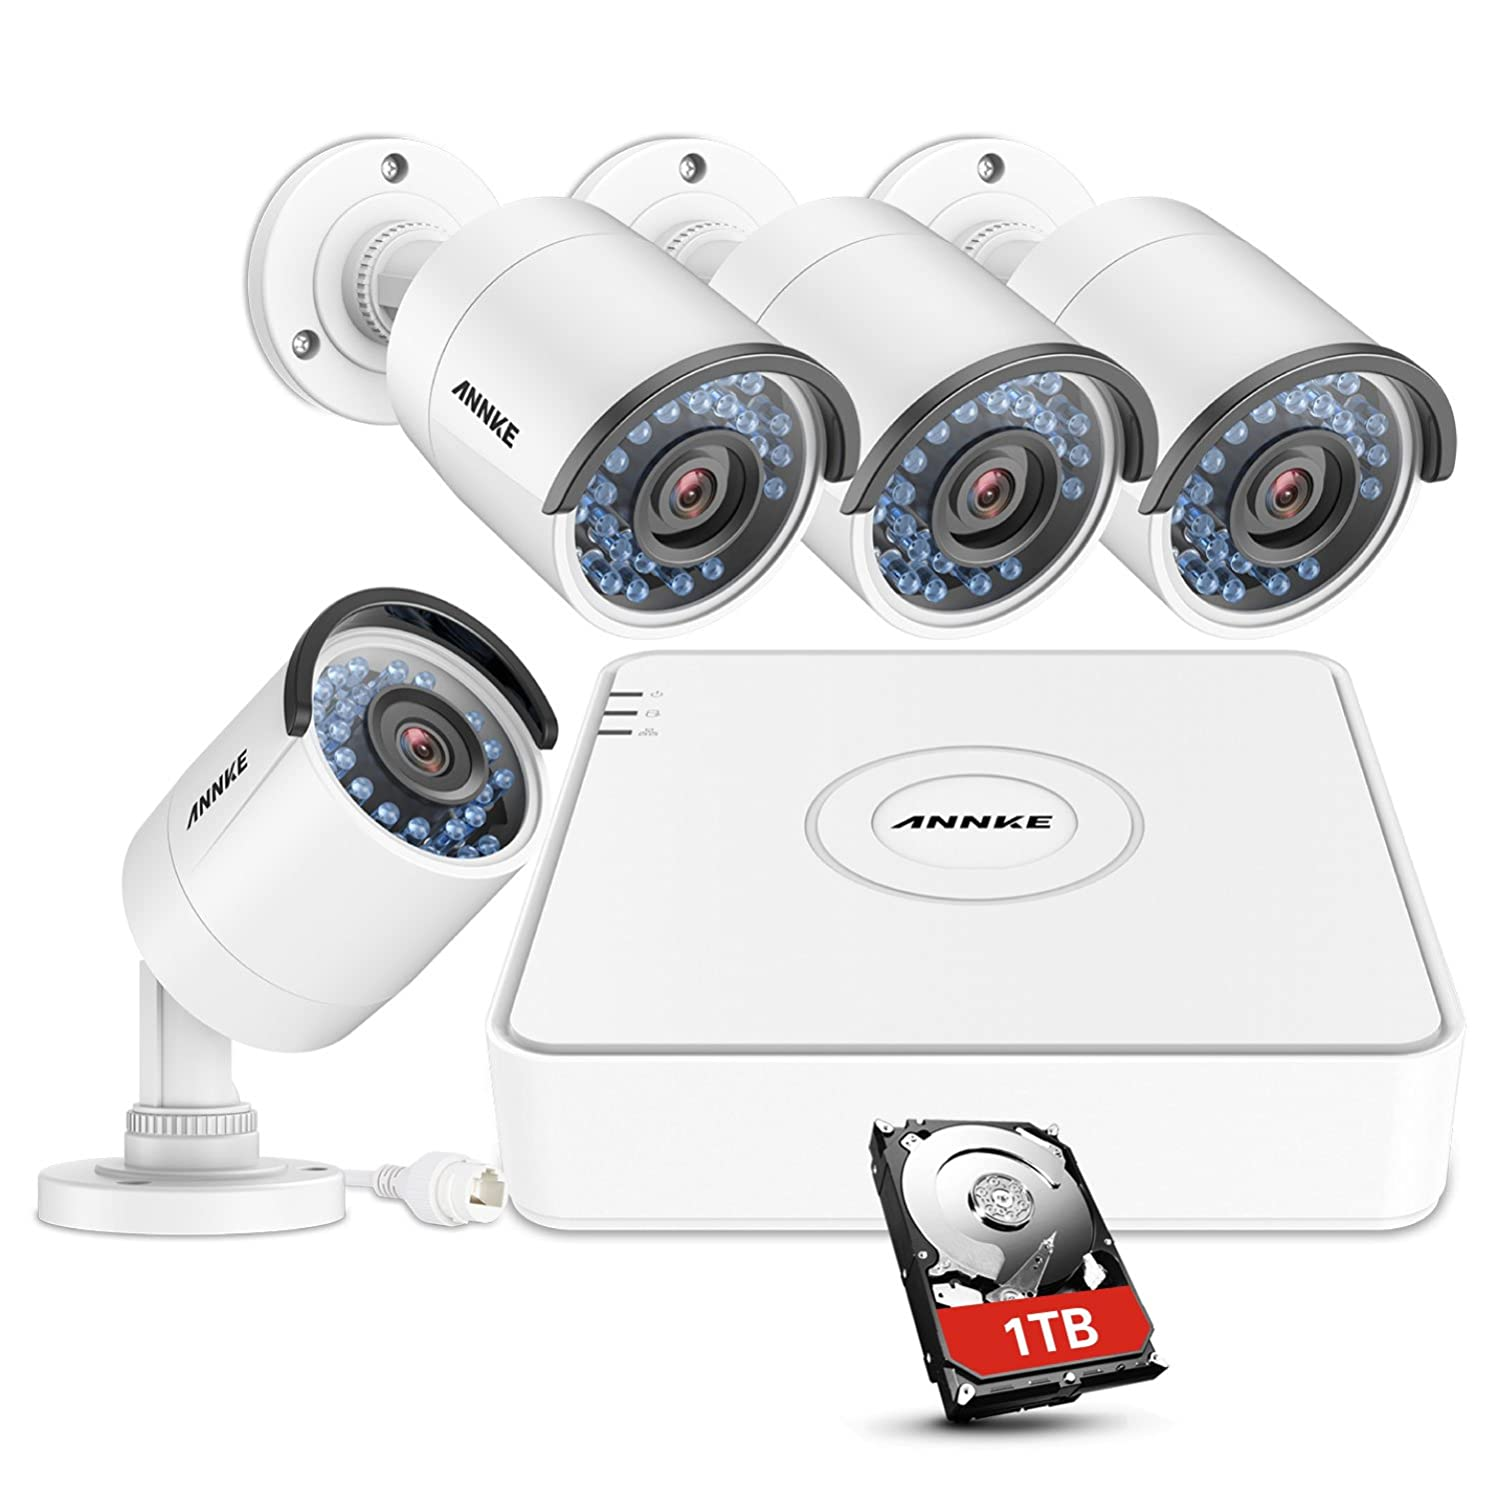 ANNKE 1080P POE NVR Security Camera System with 1TB Hard Drive and (4)  1 3MP 960P Outdoor IP Cameras, IP67 Weatherproof, 100ft Night Vision,  Customize